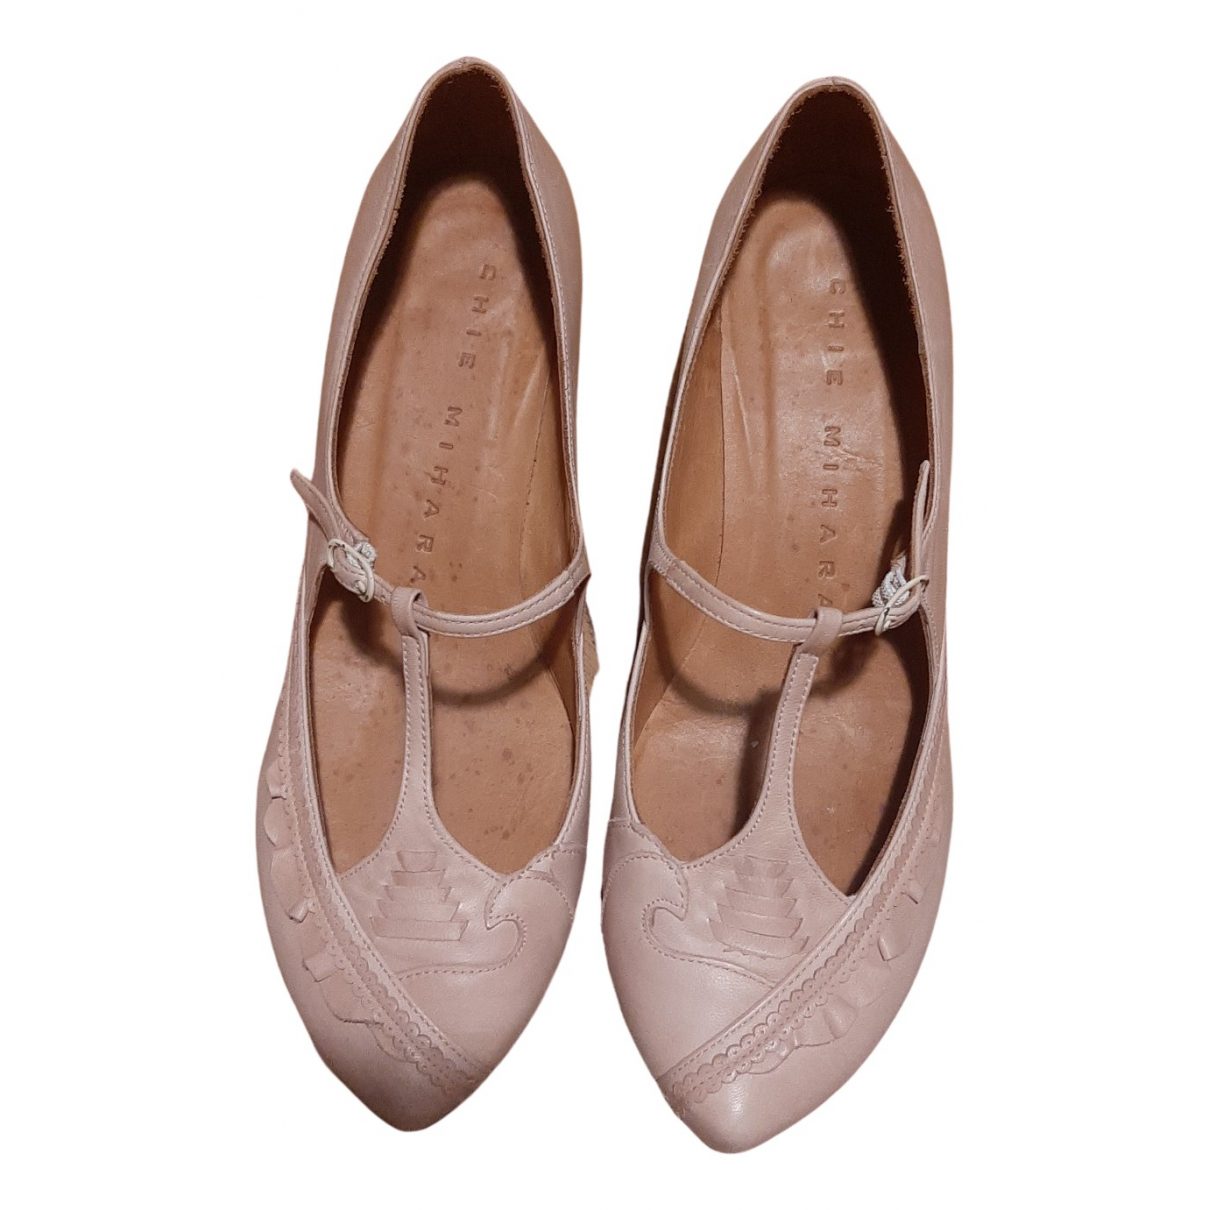 Chie Mihara N Pink Leather Ballet flats for Women 36 EU